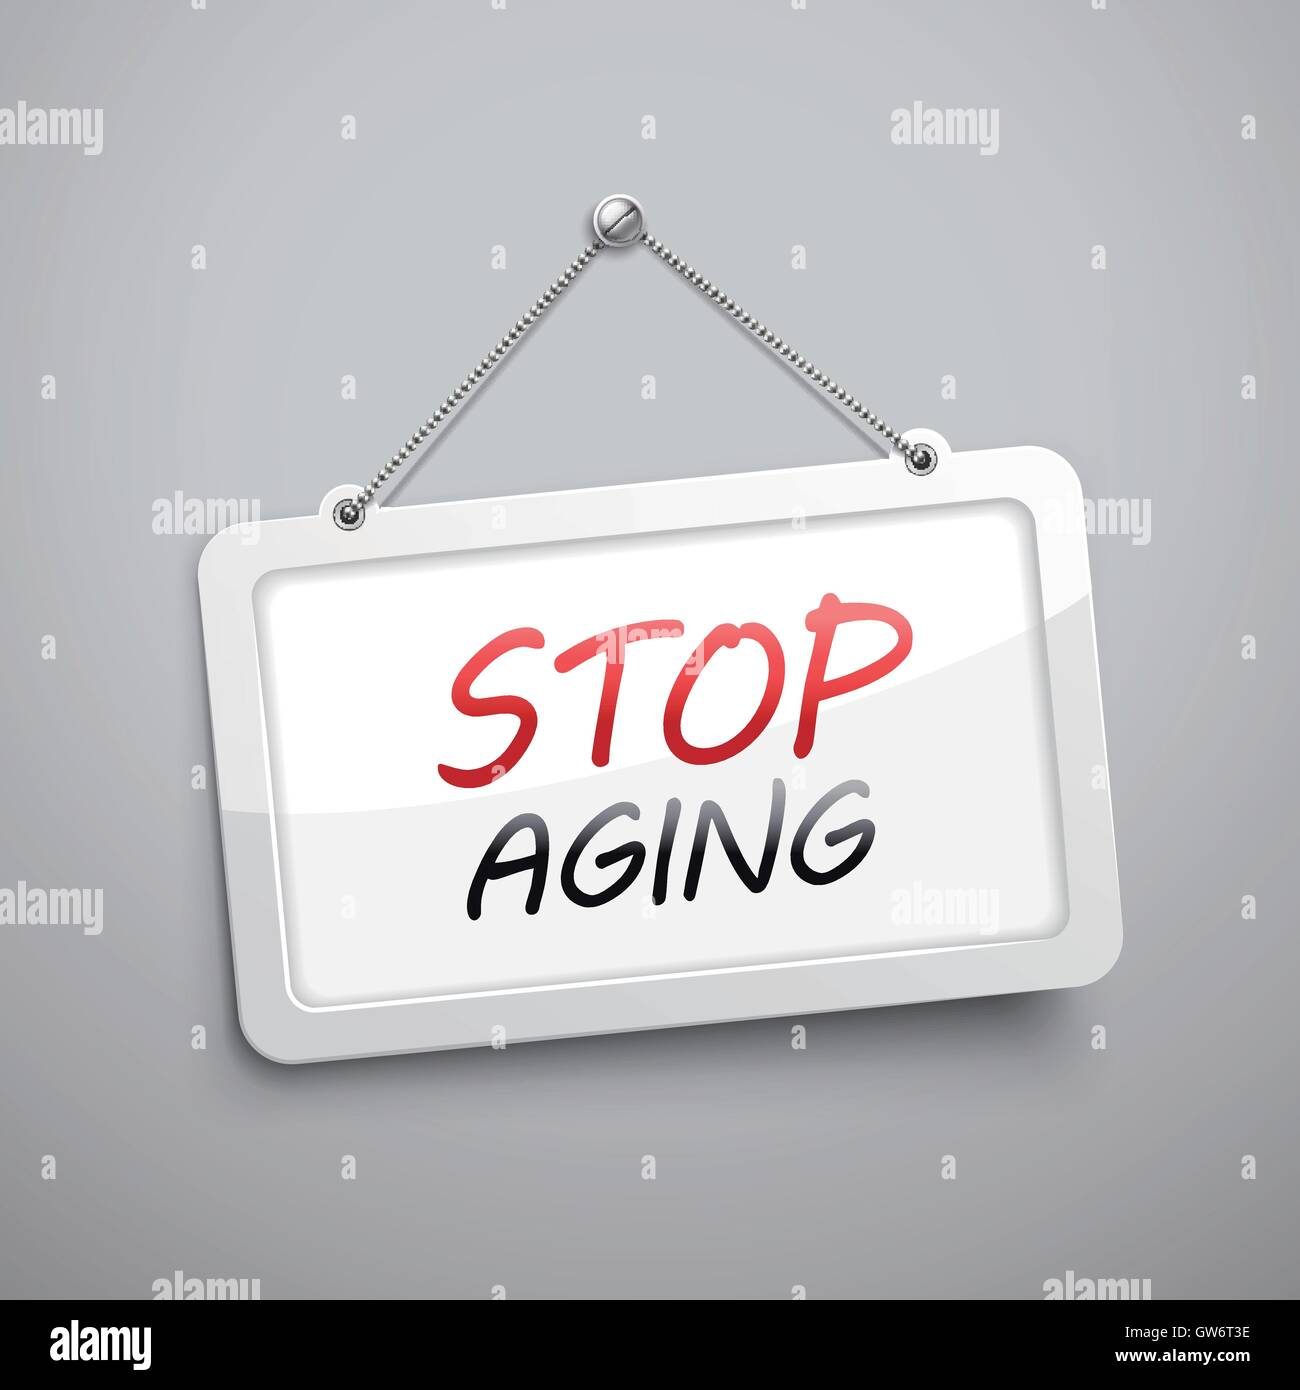 stop aging hanging sign, 3D illustration isolated on grey wall - Stock Vector